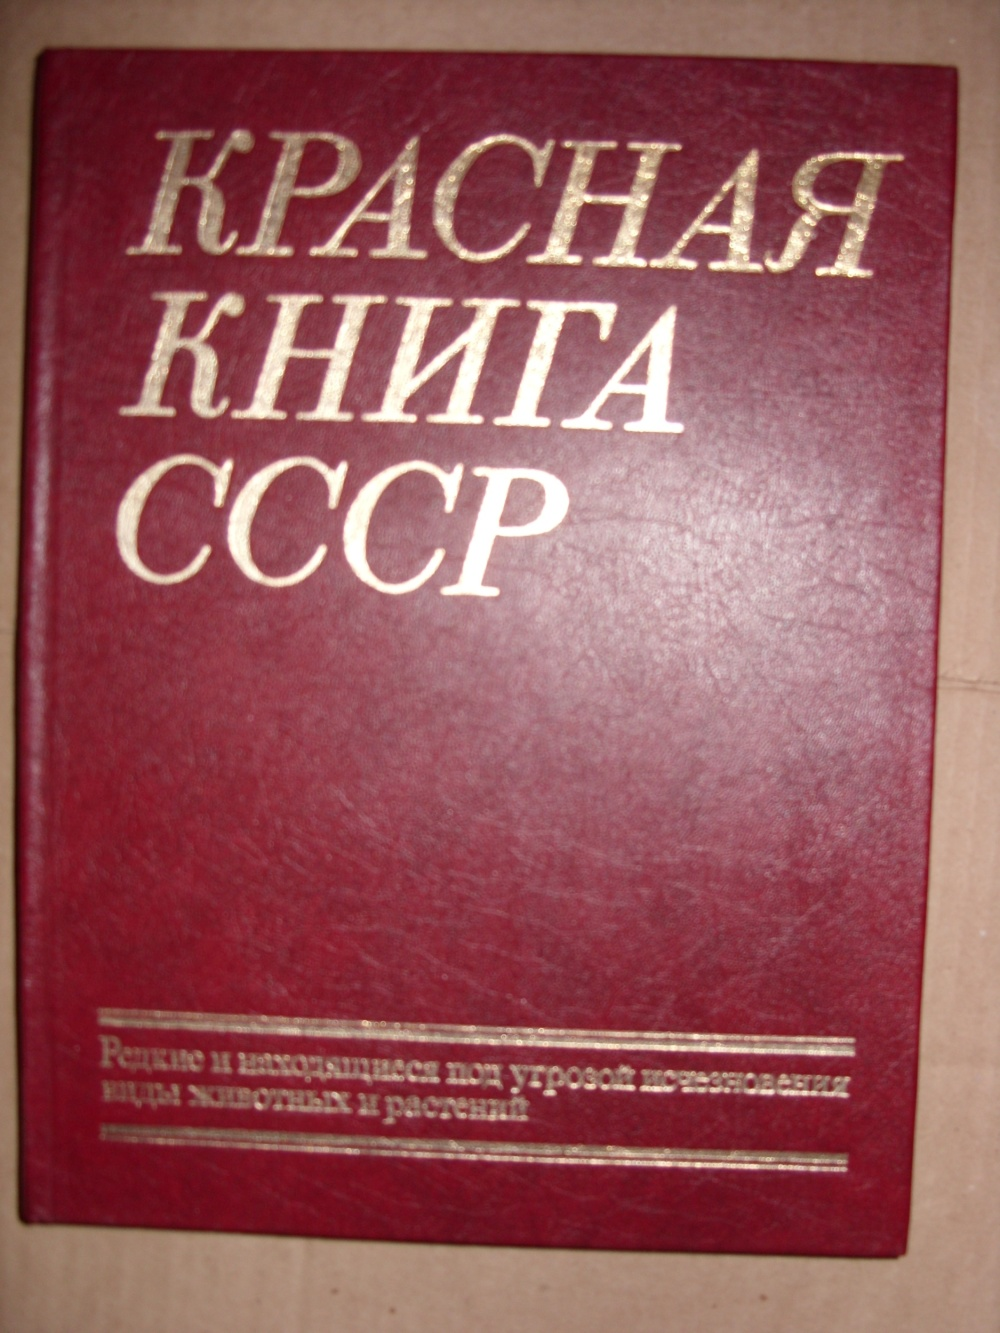 http://www.antic-book.ru/content/images/items/2156.jpg